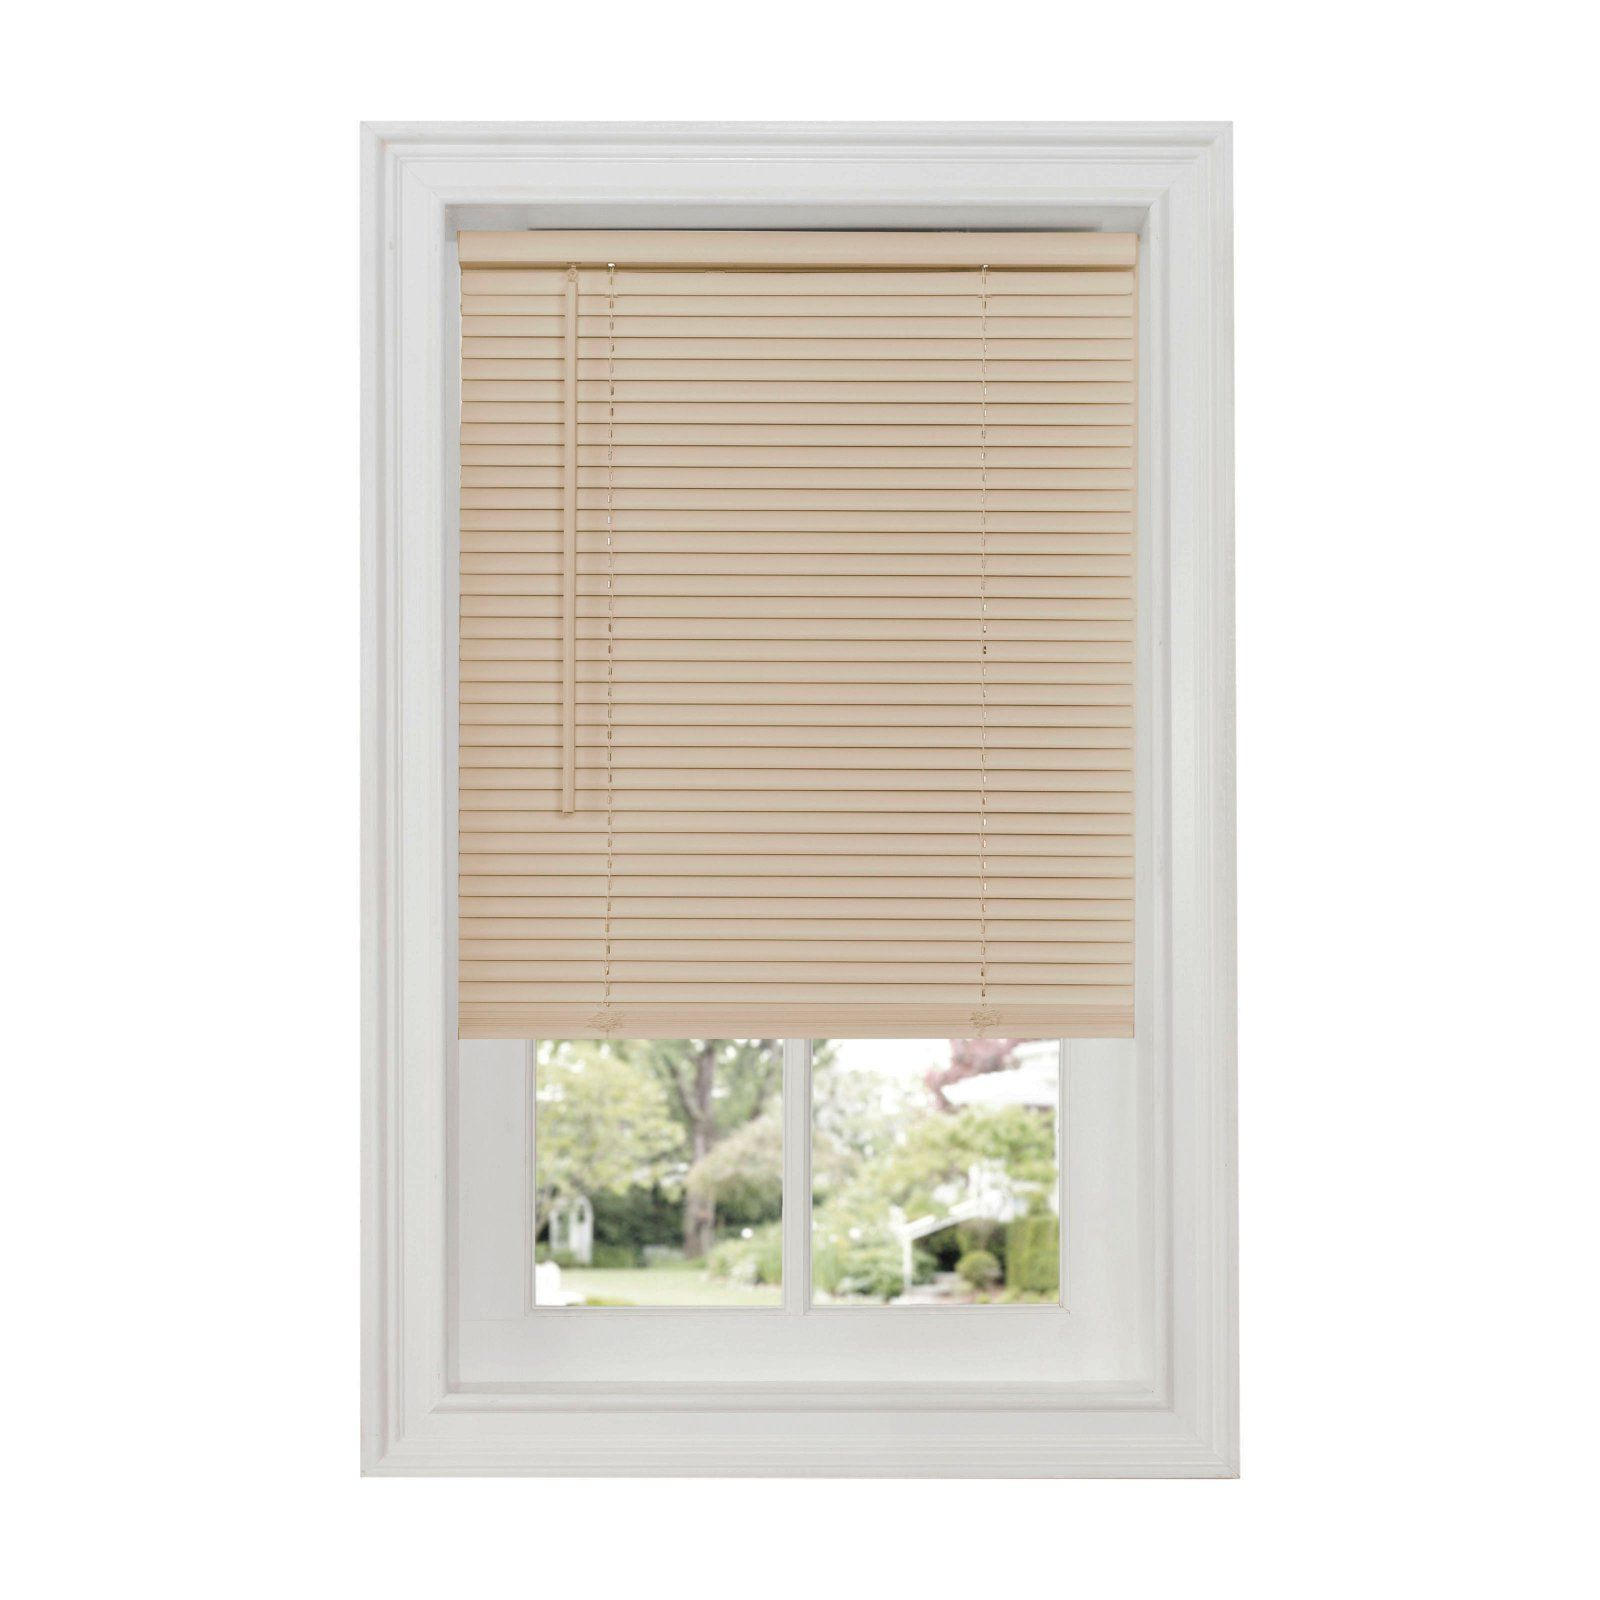 Achim 1 In Gii Deluxe Sundown Room Darkening Cordless Vinyl Mini Blinds Alabaster Mini Blinds Horizontal Blinds Vinyl Mini Blinds